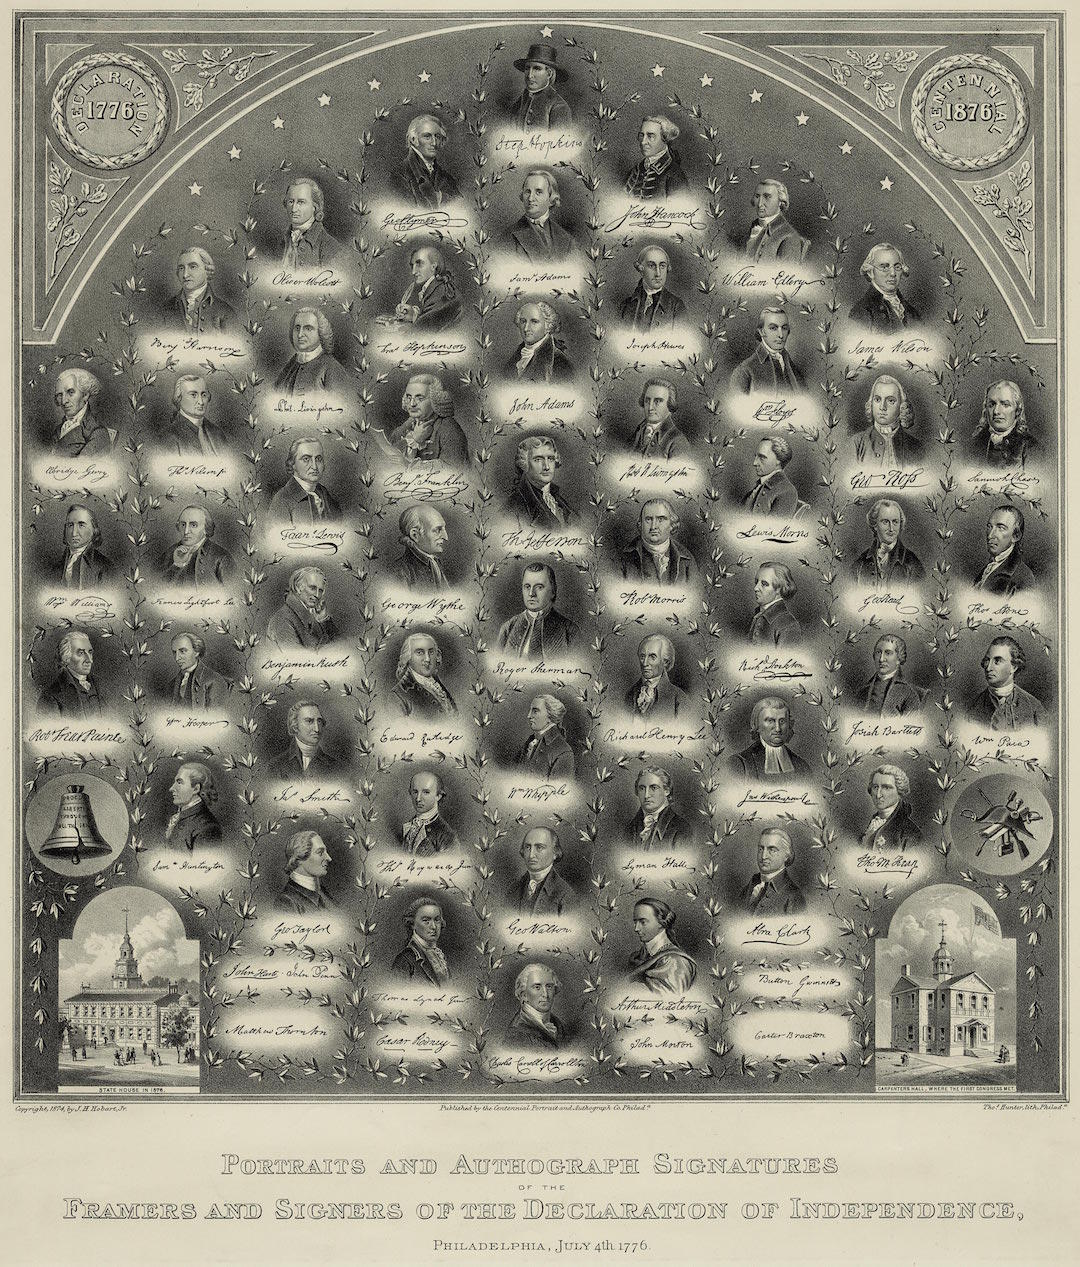 Bicentennial Engraving of the Signers of the Declaration of Independence